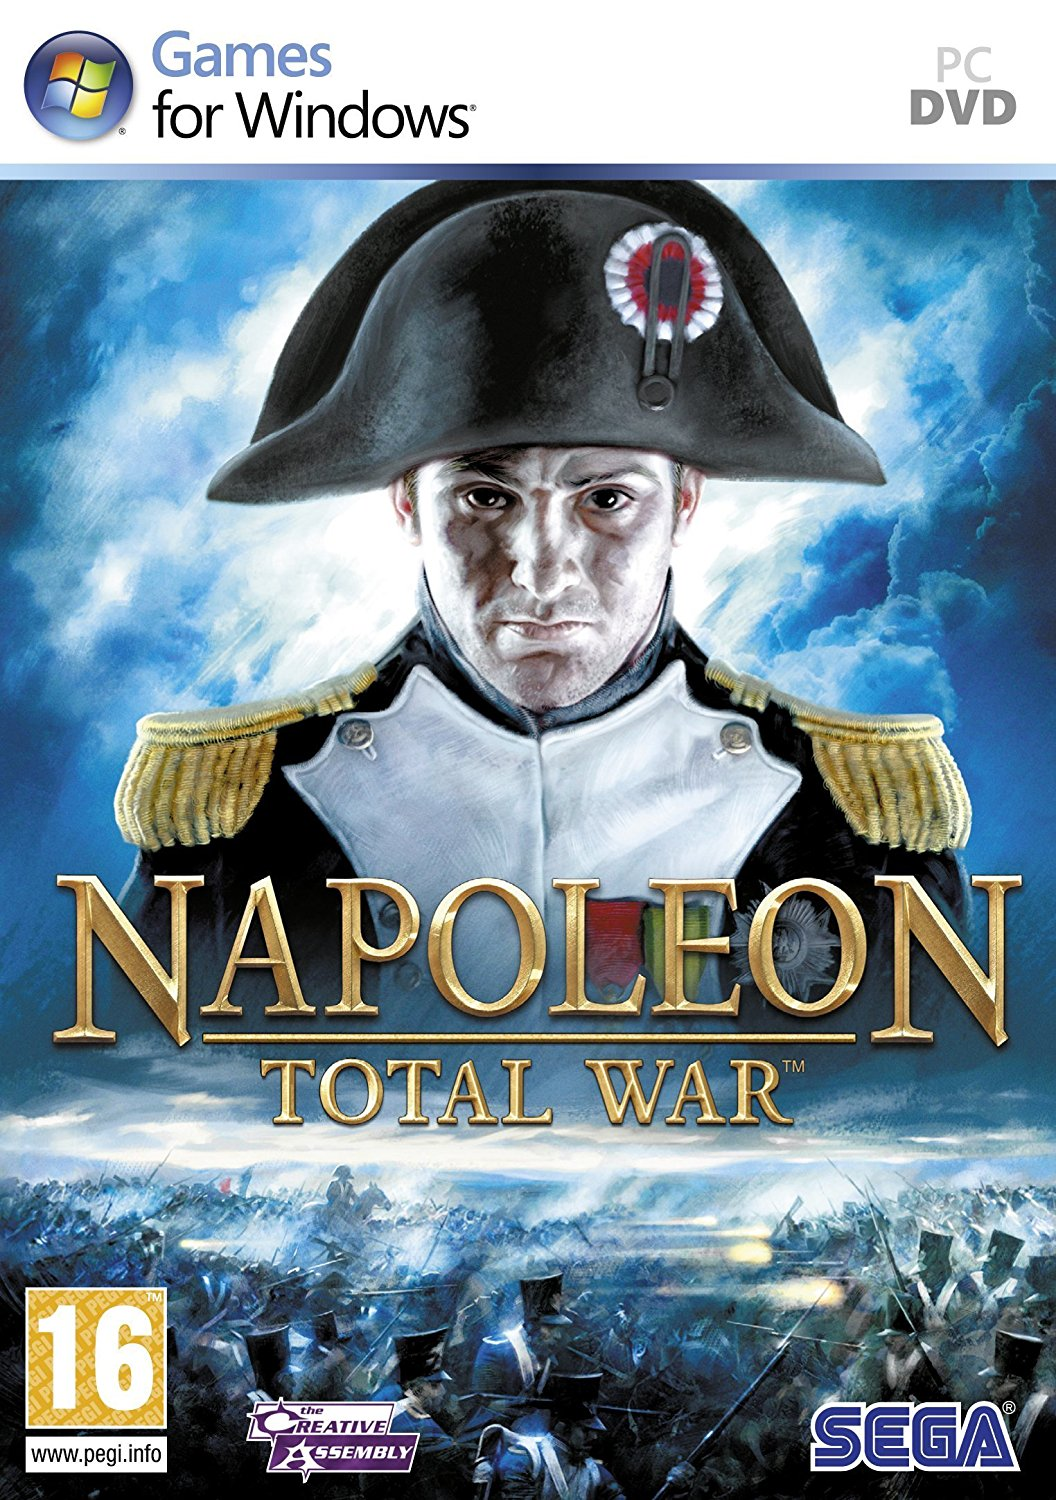 Napoleon: Total War {Gold Collection} ^*CorePack Repack